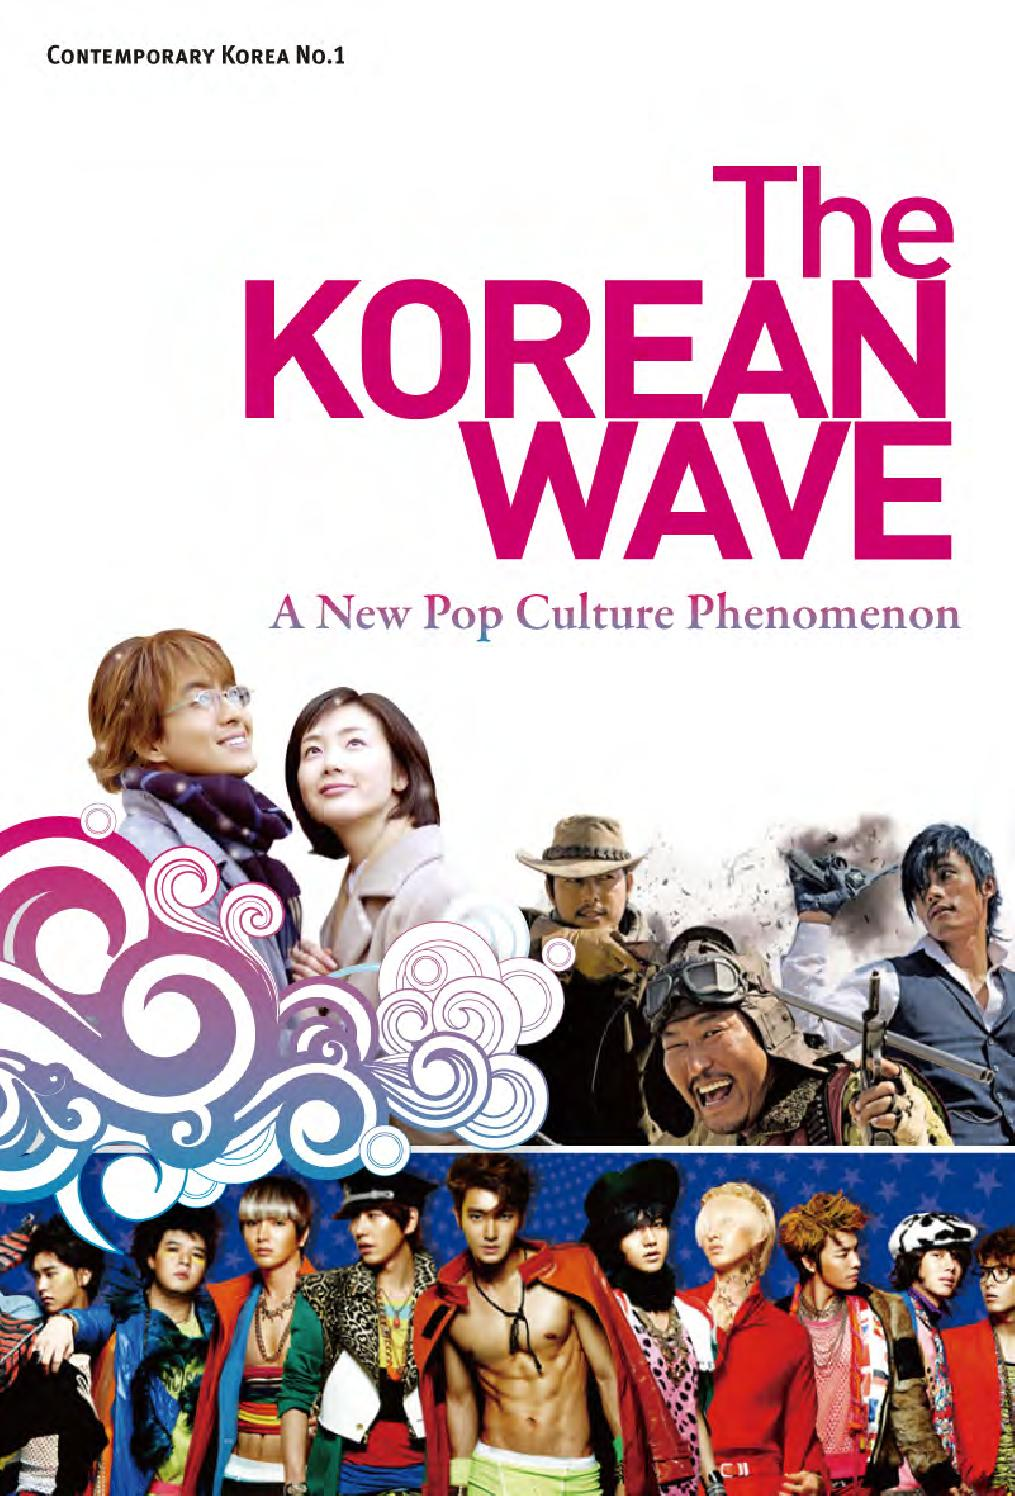 The korean wave 2011 by KOCIS - issuu